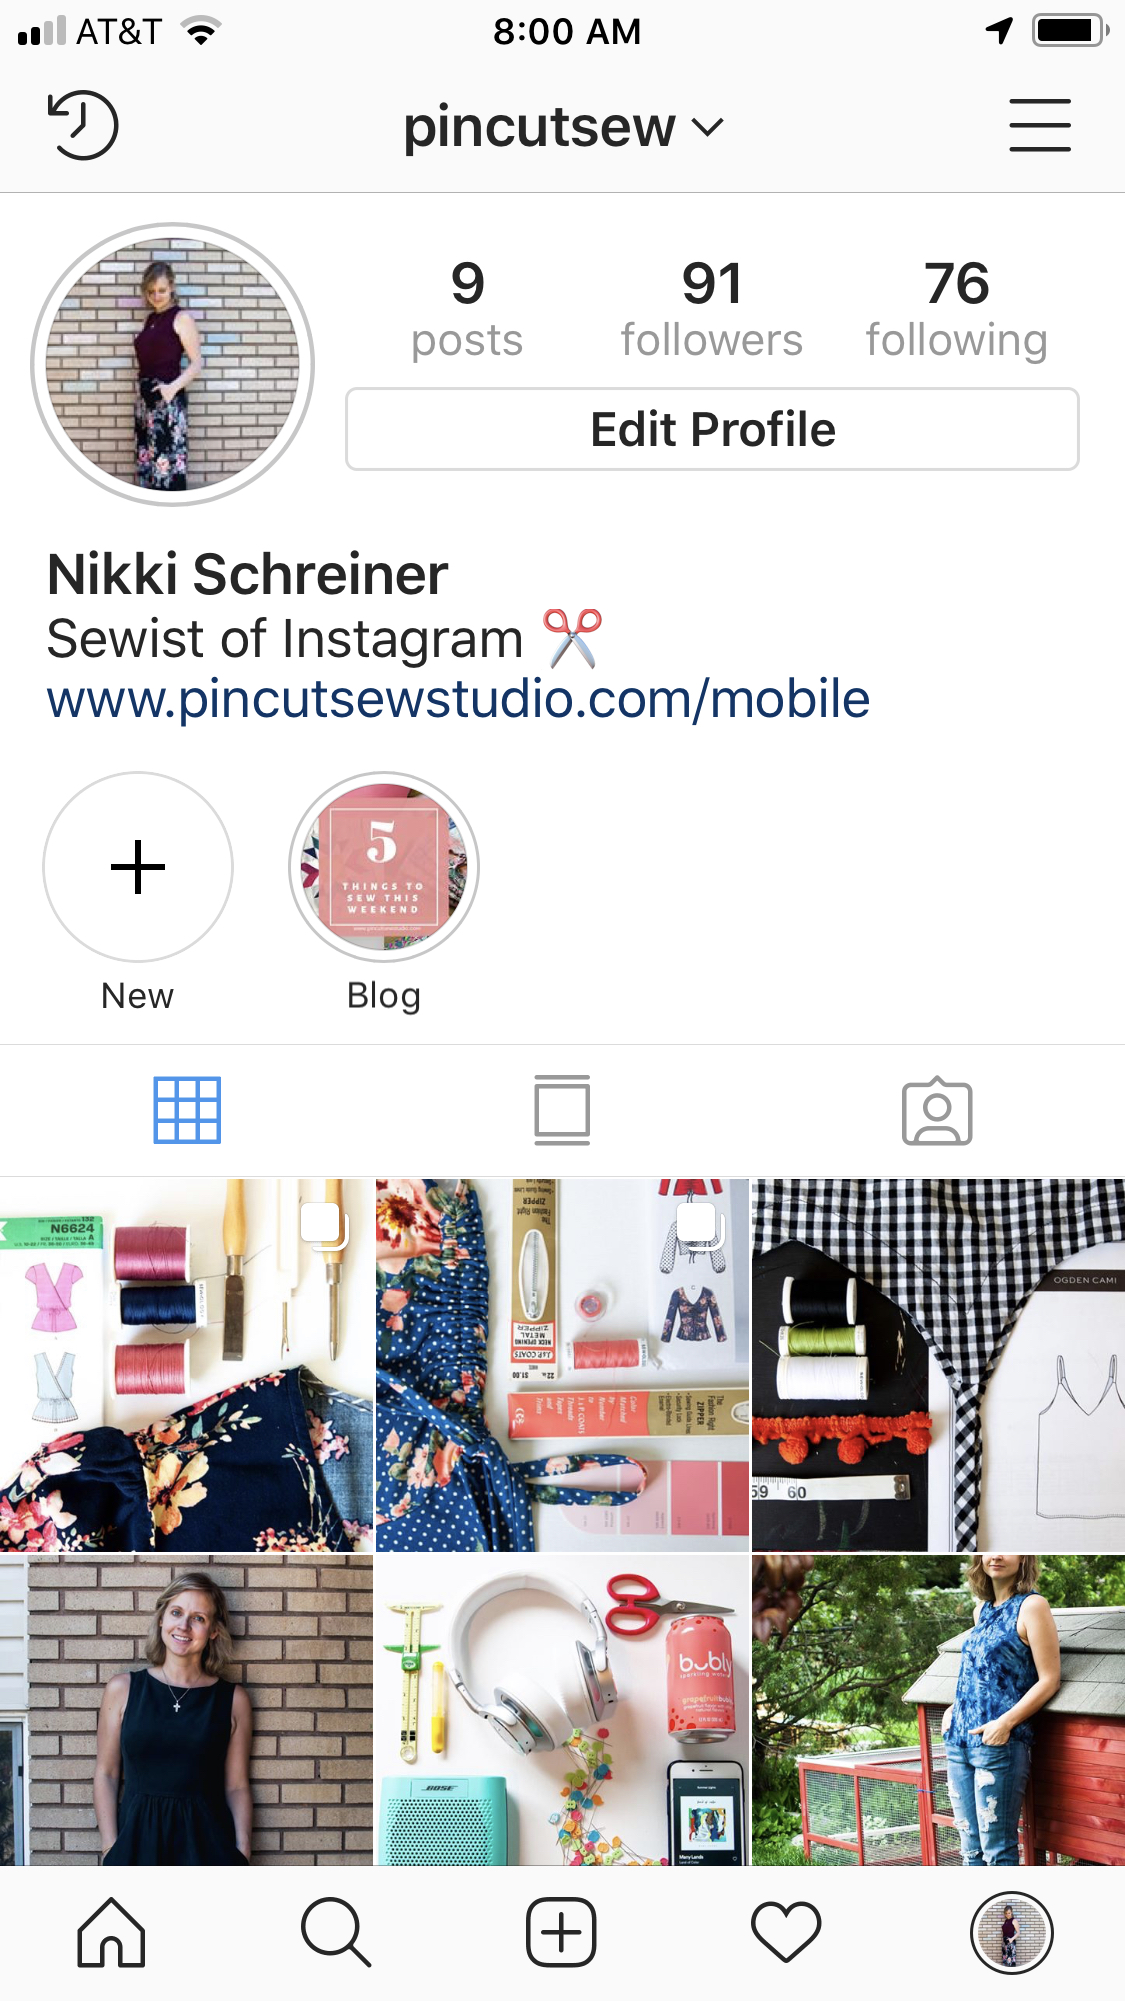 Nikki Schreiner of Pin, Cut, Sew Studio on Instagram